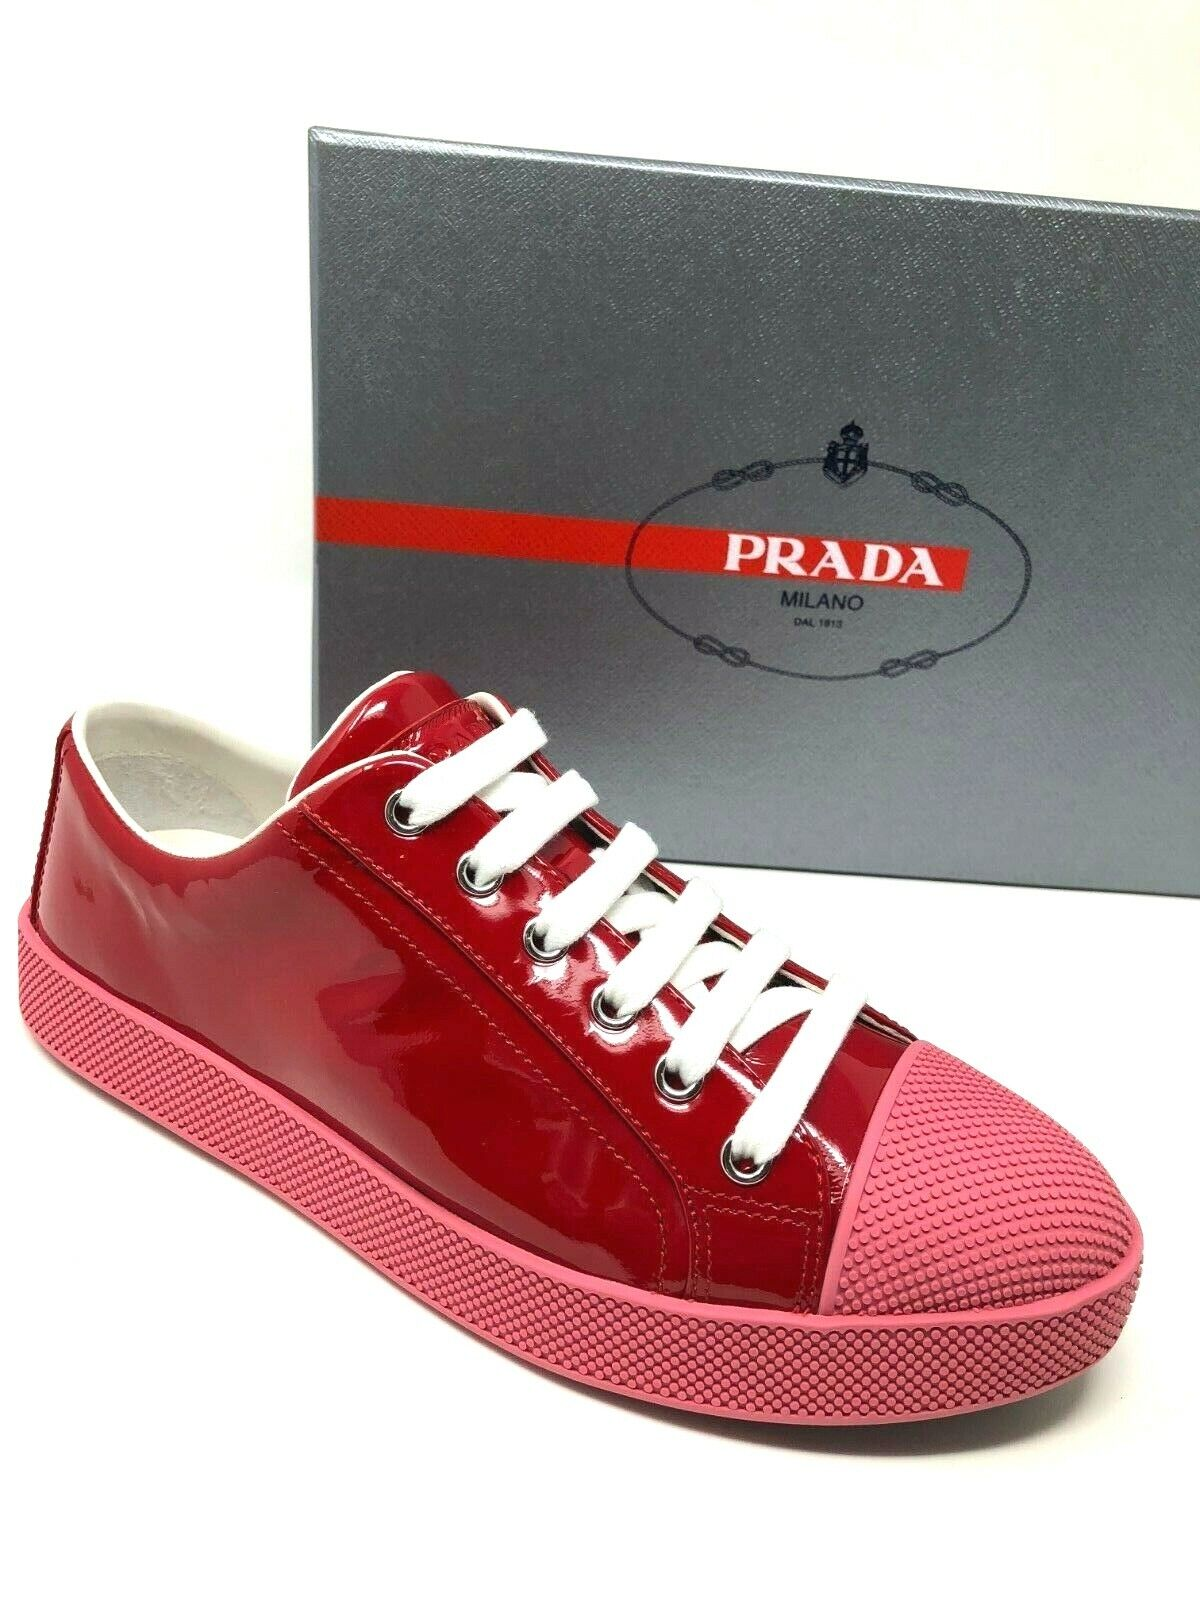 575 575 575 New PRADA Womens Sneakers Flats Red W  Pink Ladies shoes Size 37 38 7 8 eb00f9